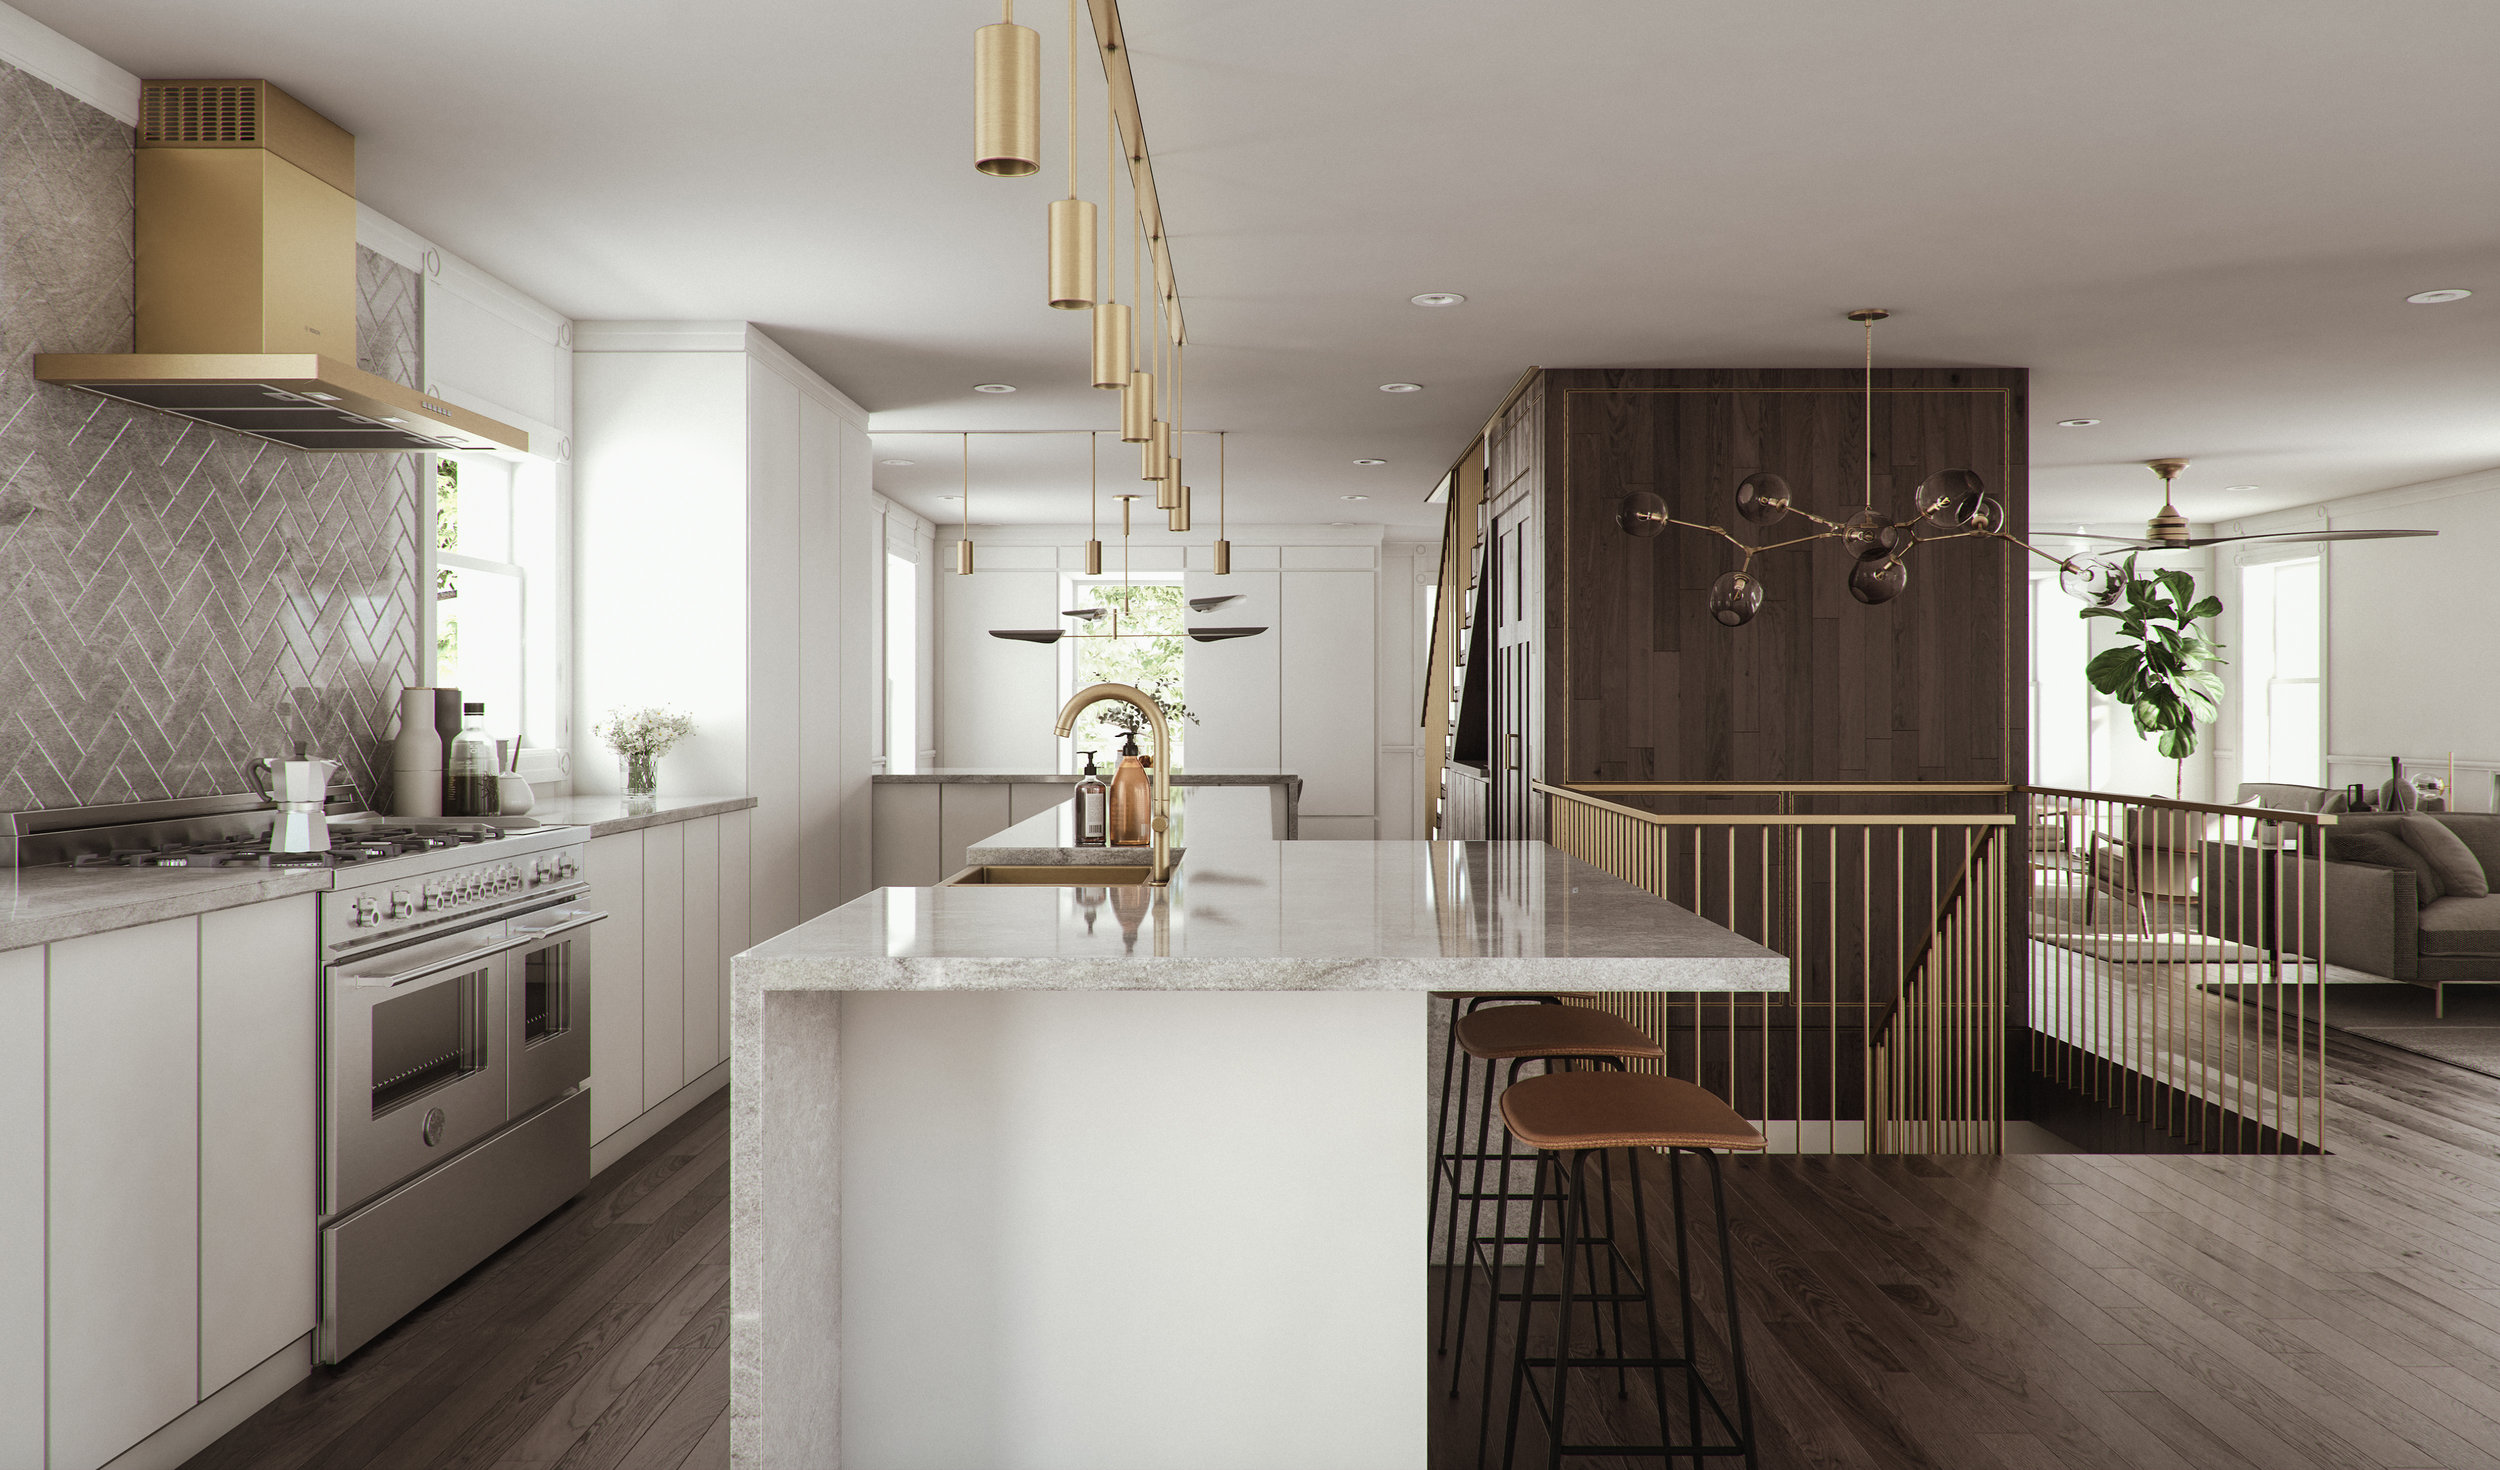 The kitchen acts as the focal point of an expansive ground floor